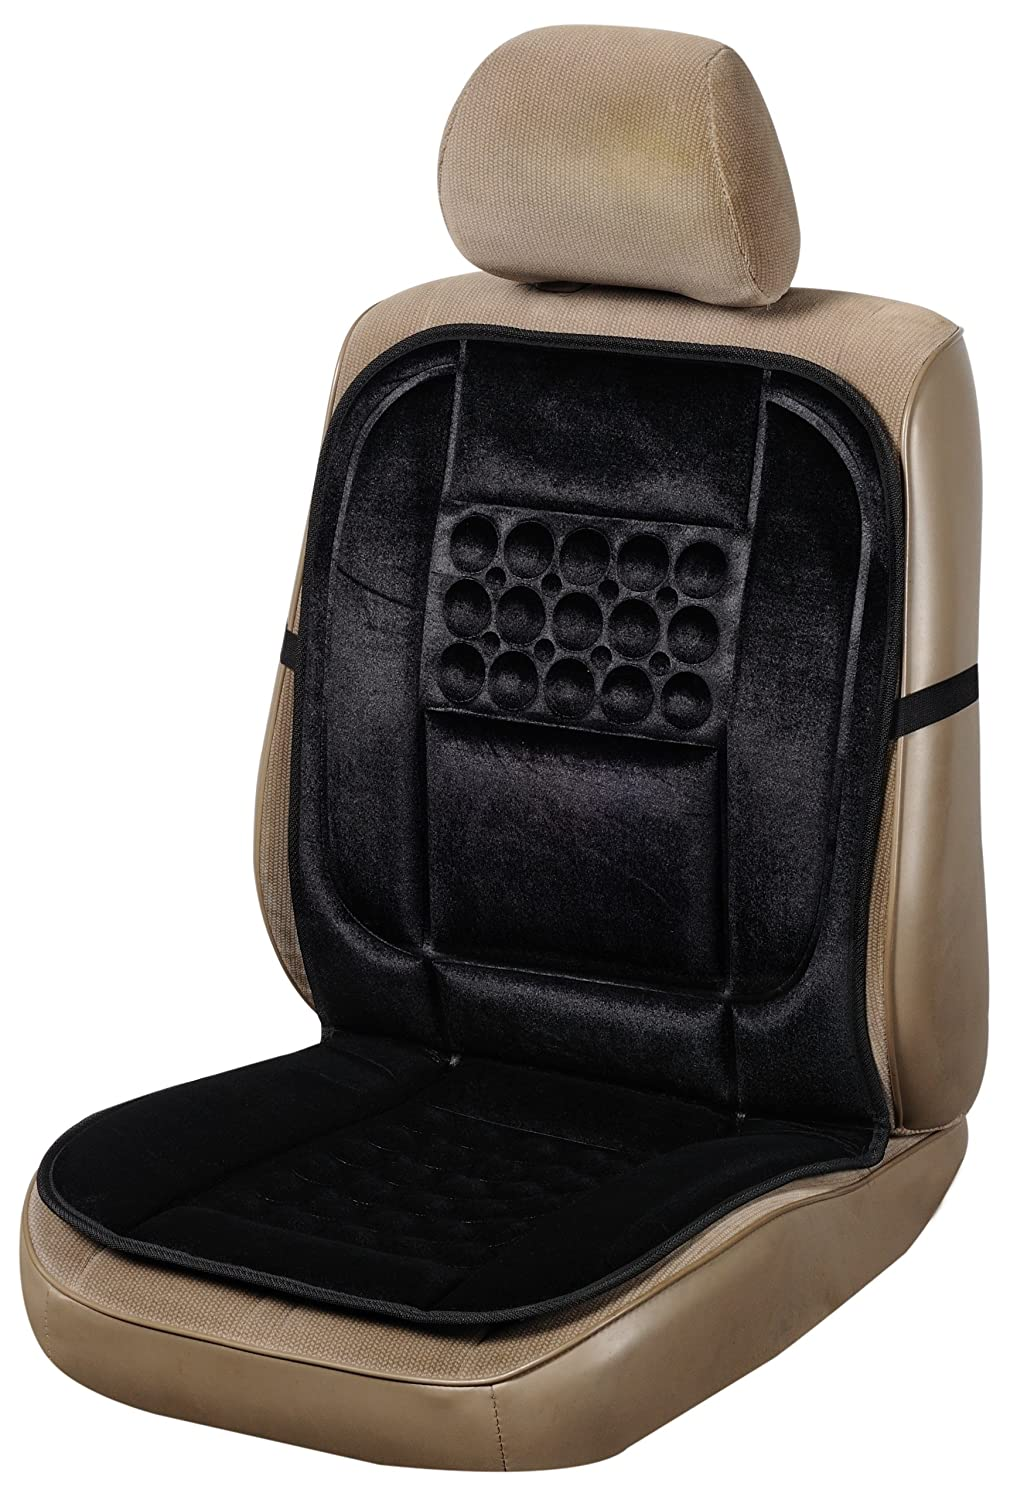 Car Seat Cover Lumba Massage Cushion Pad Bolster Bubble Office Chair Captain